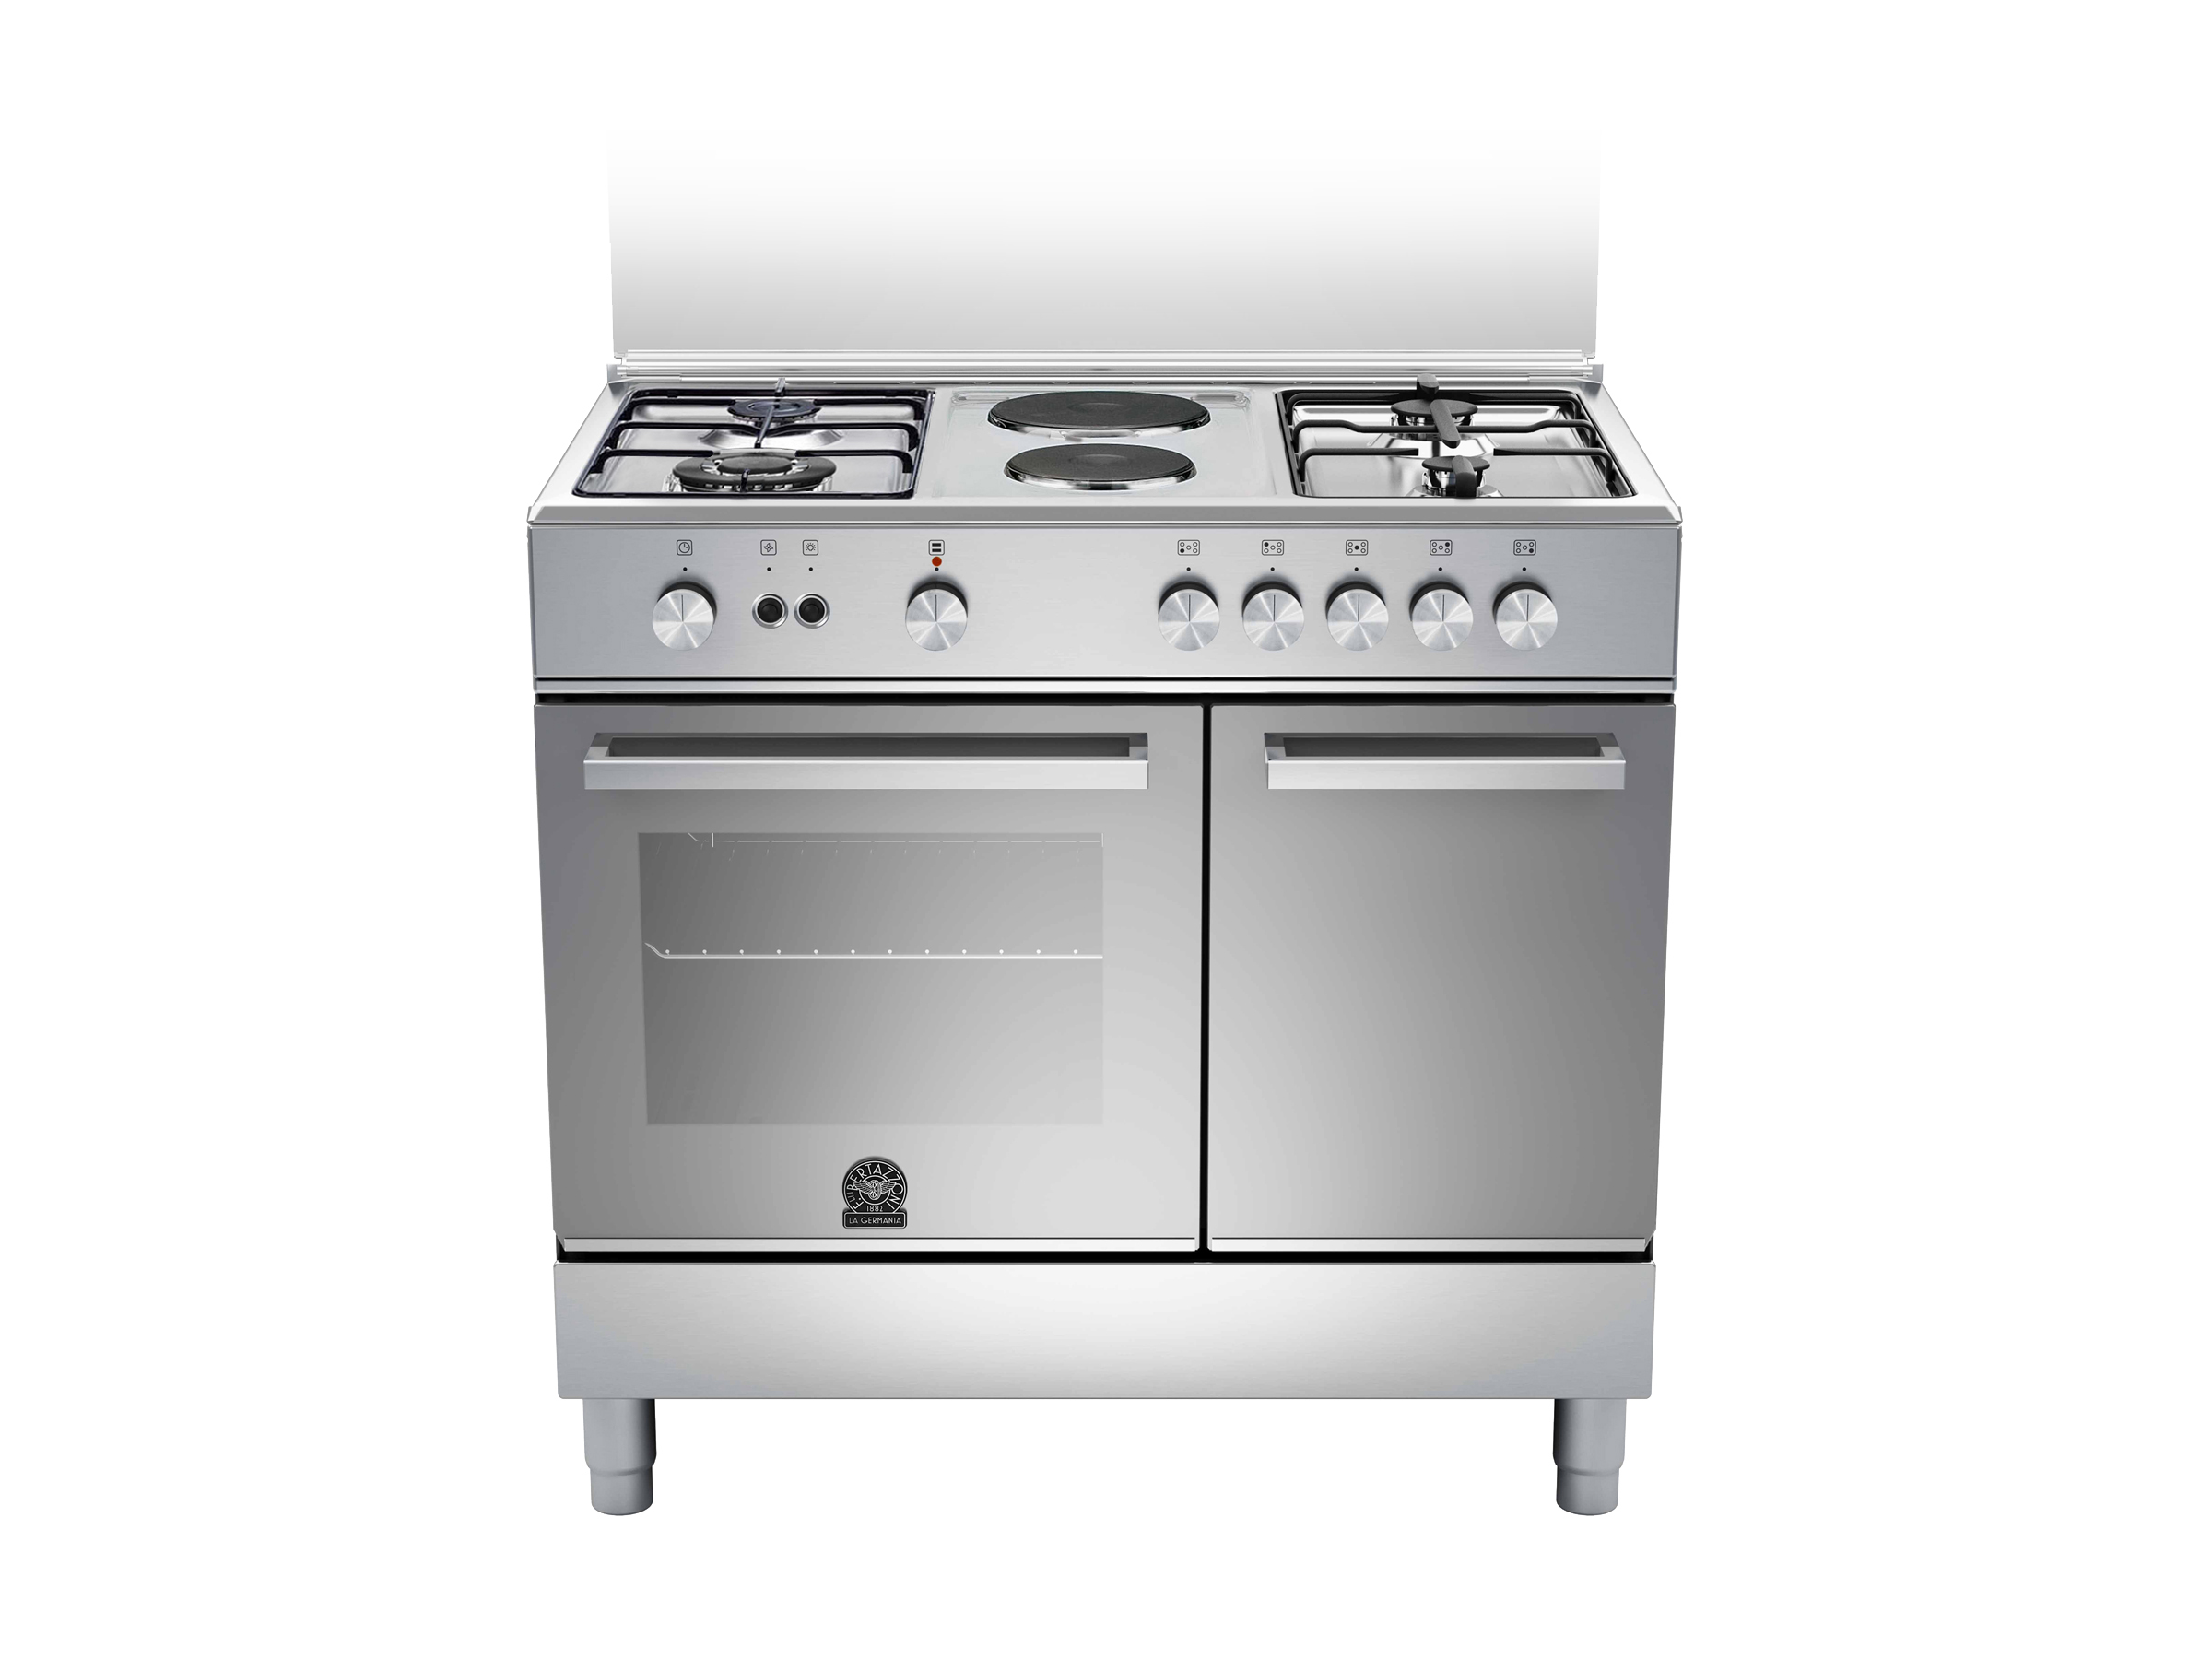 90 4-Burners 2-Hotplate Bottle Compartment DX | Bertazzoni La Germania - Stainless